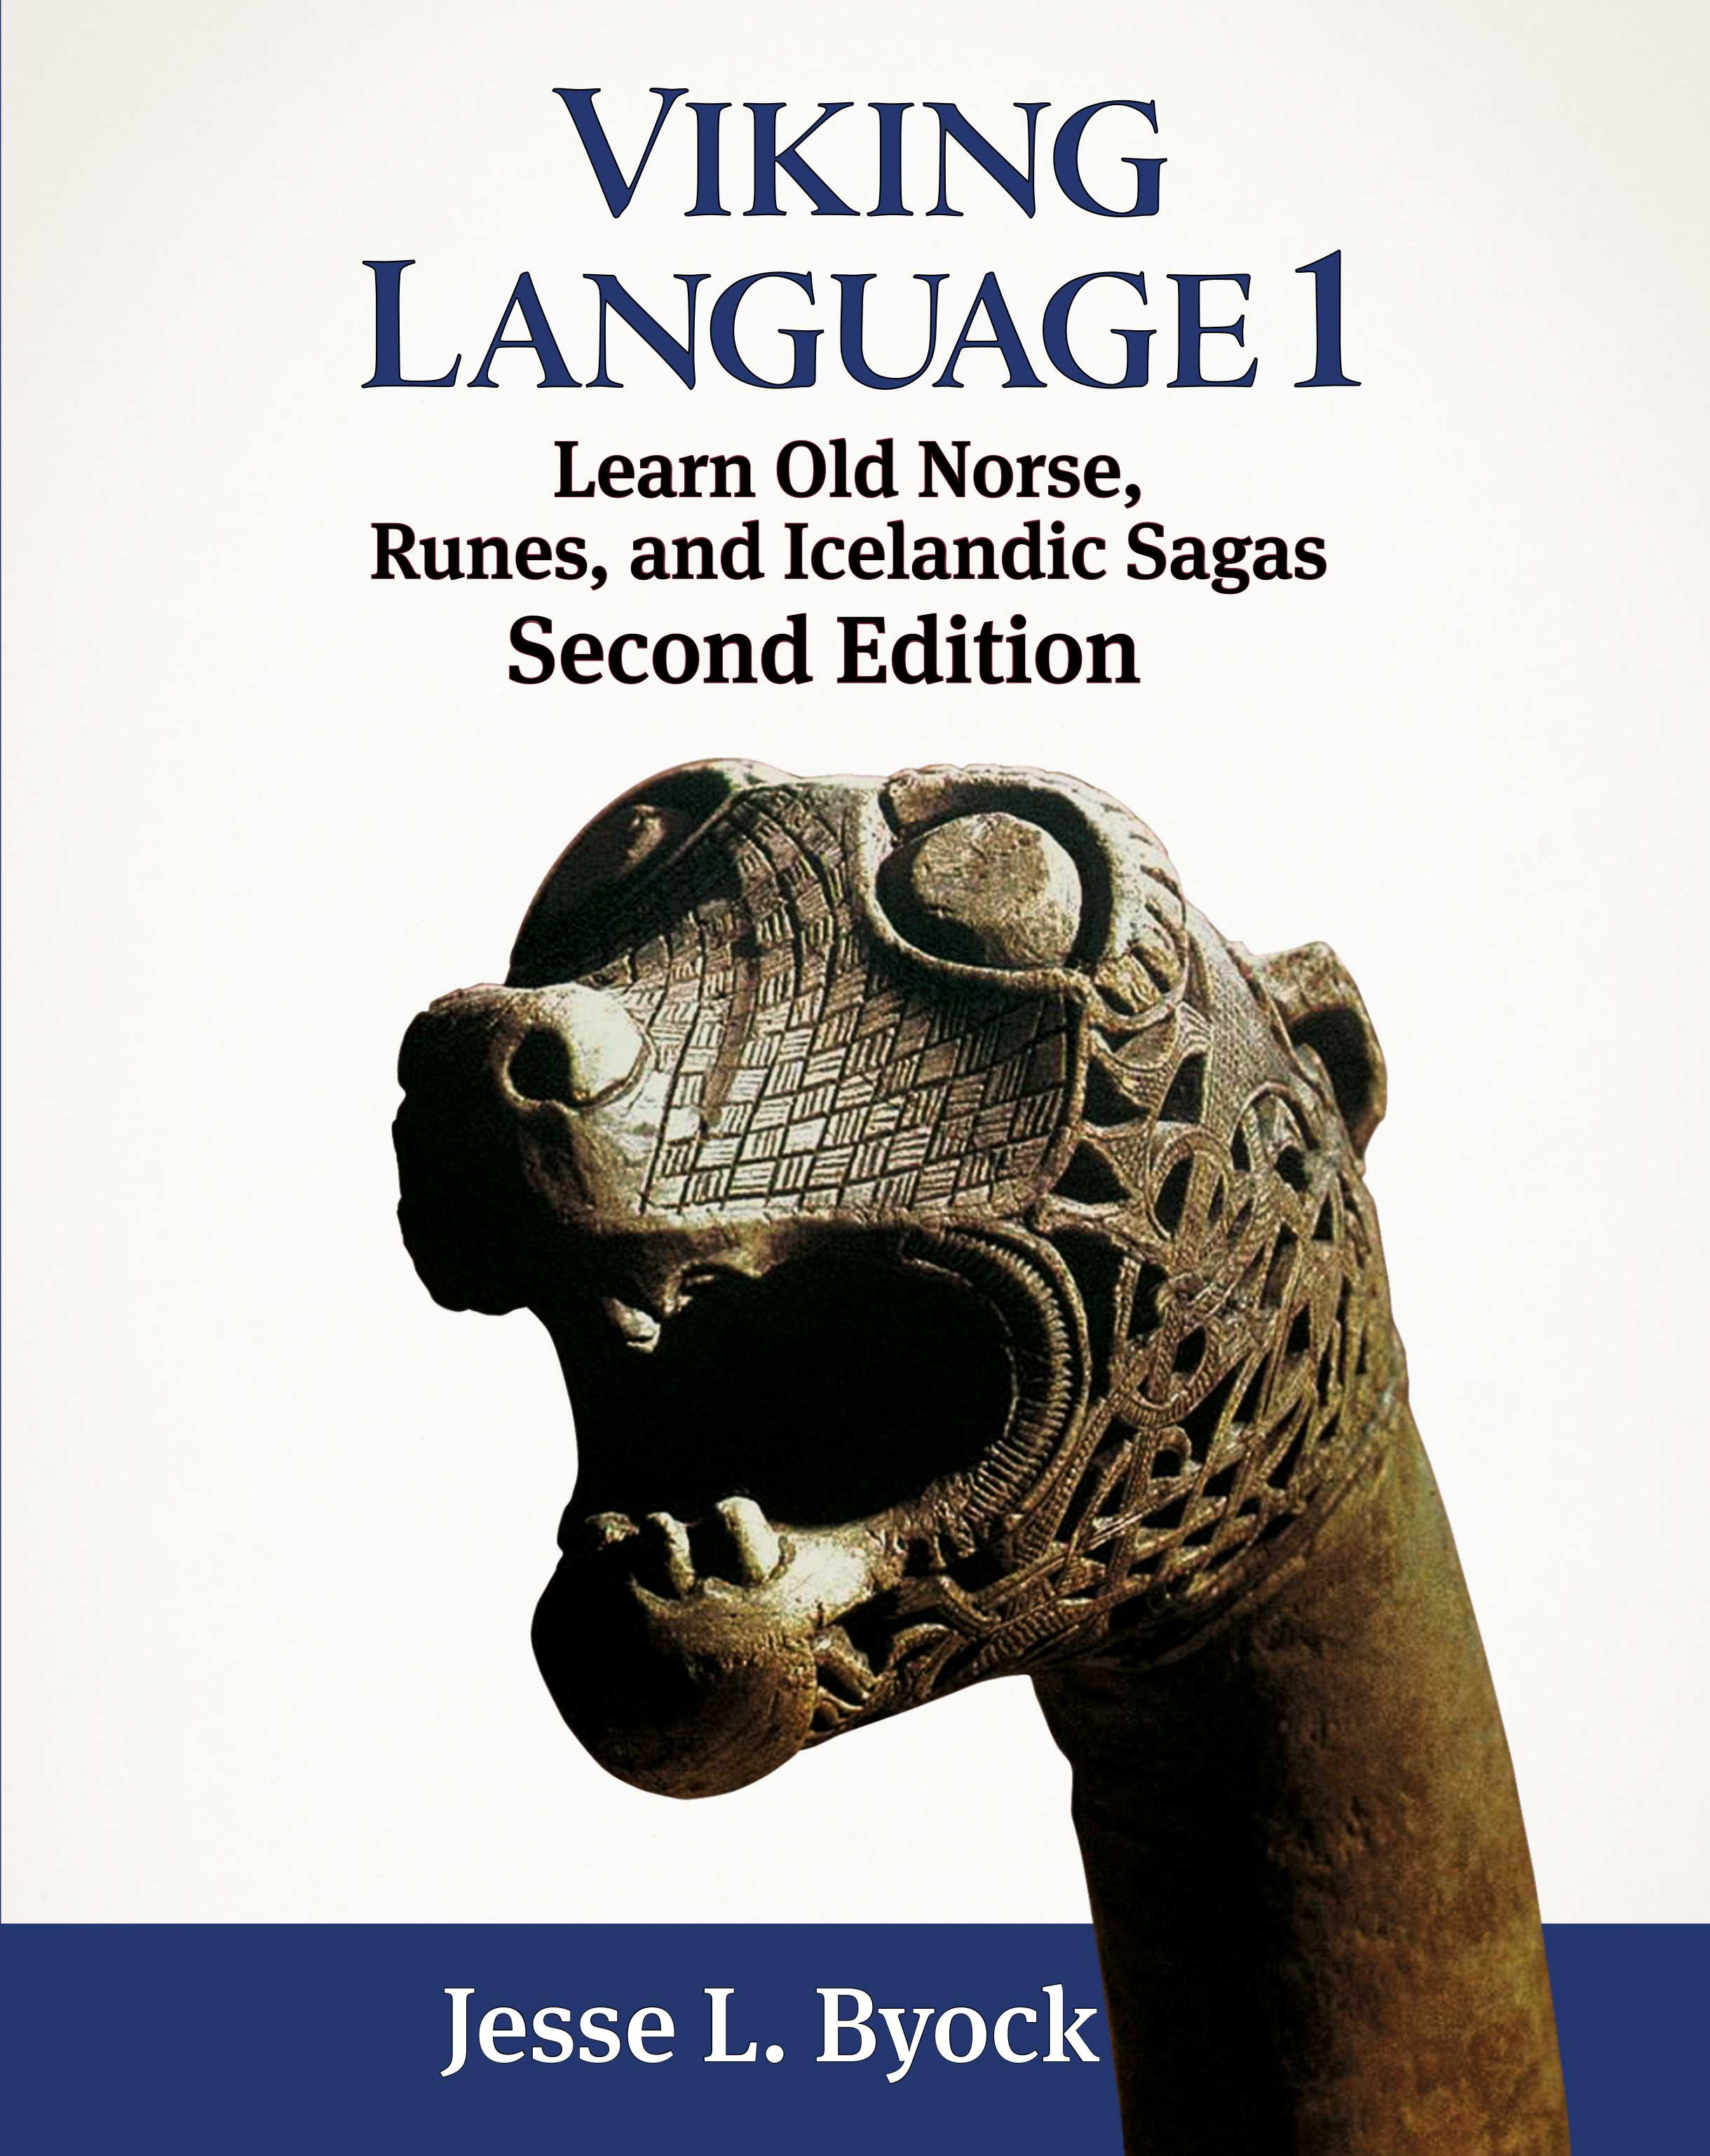 Viking Language 1, Second Edition: Learn Old Norse, Runes, and Icelandic Sagas